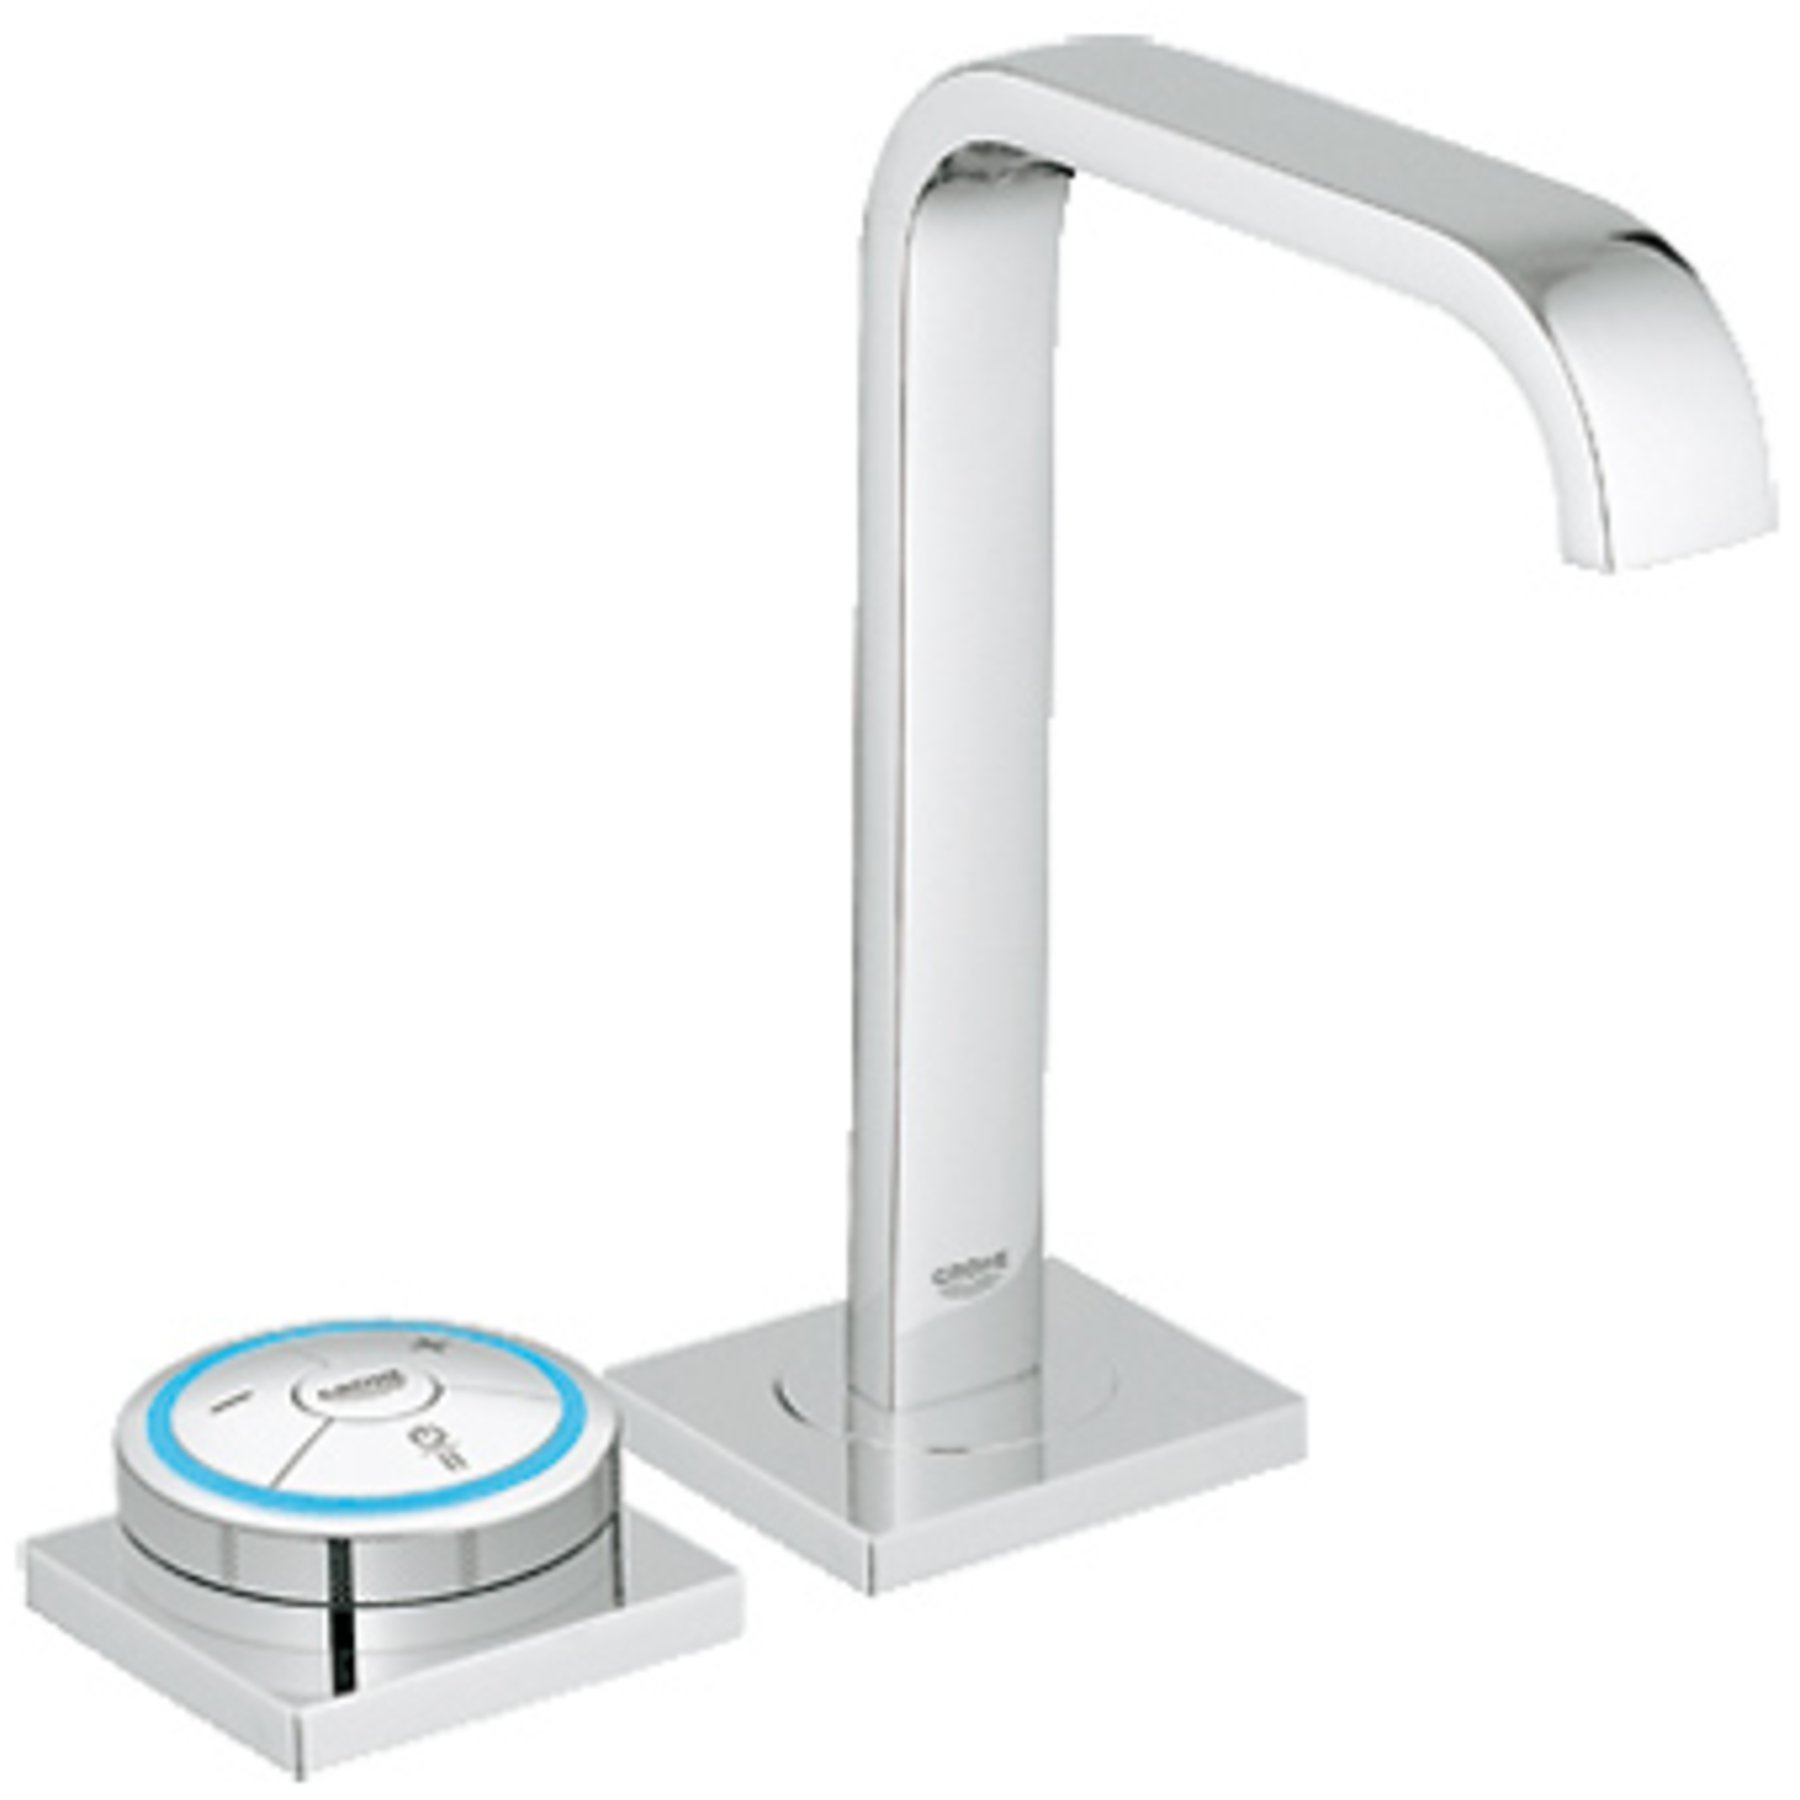 Grohe Allure F Digital Allure digitale wastafelkraan met waste incl. digitale menginrichting chroom